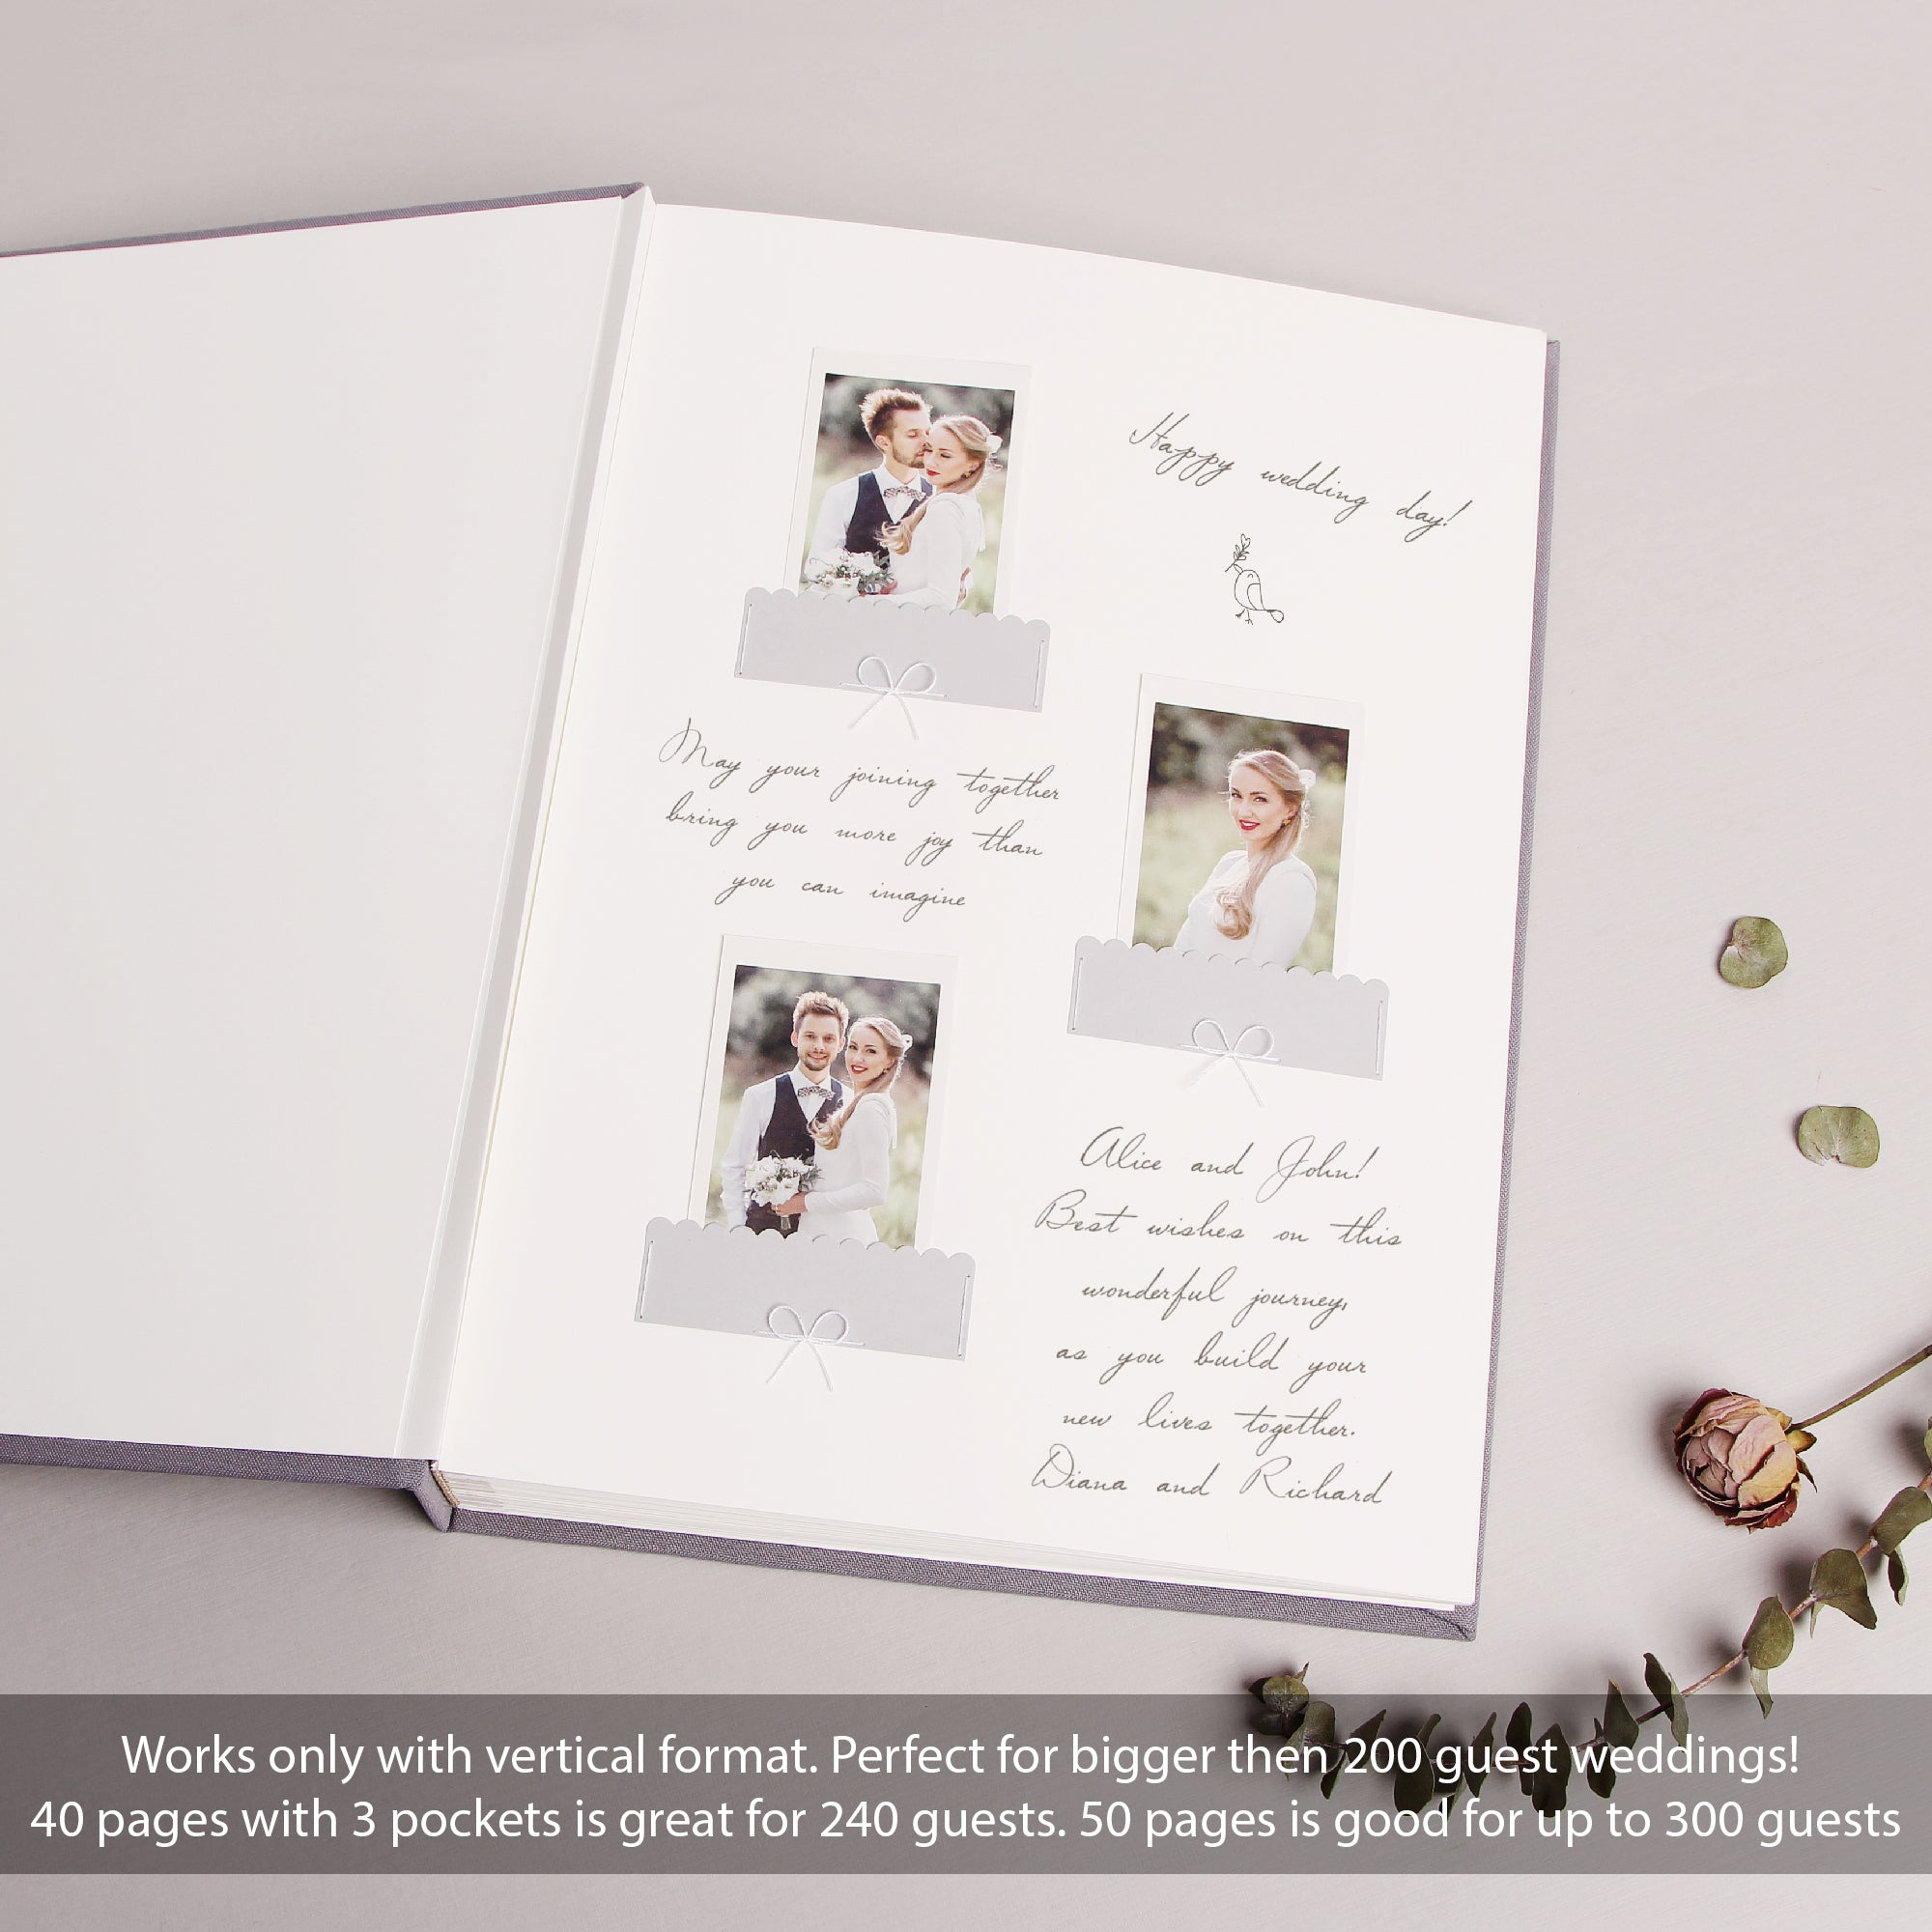 Wedding Instant Album Guest Book Sign in Book Coral with White Lettering by Liumy - Liumy